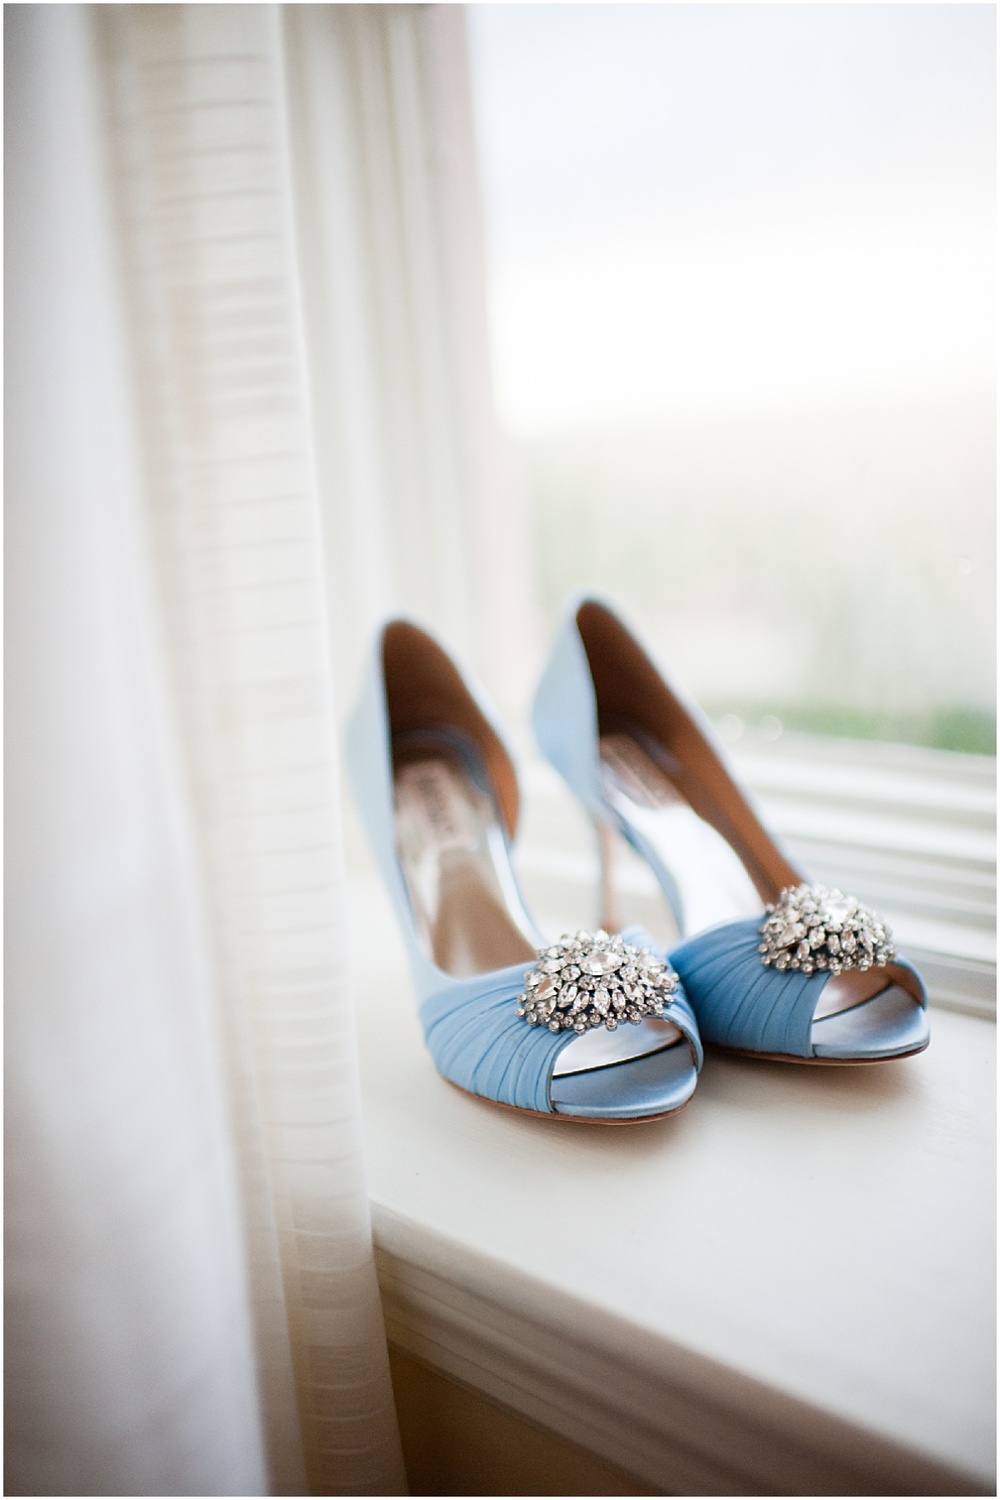 blue badgley mischka heels on the window sil at the biltmore hotel